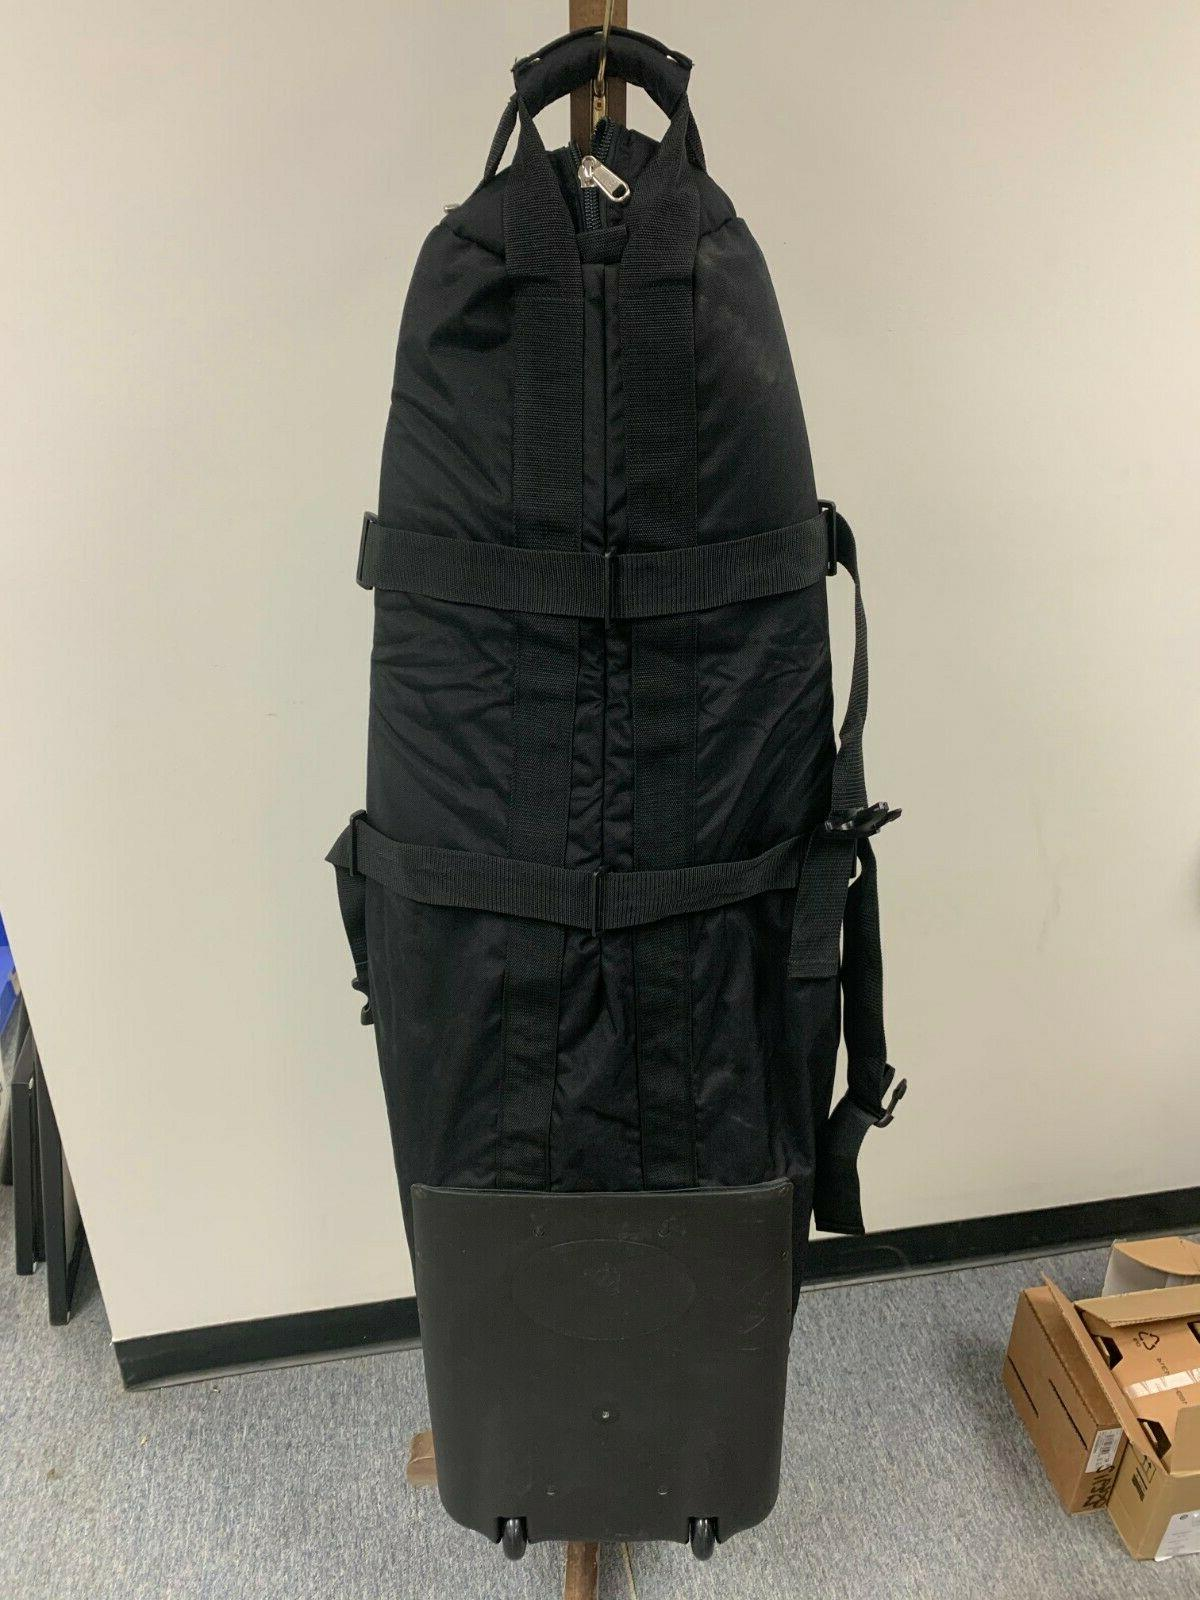 Standing Golf Gear Travel Bag Red Black Blue Condition Duty